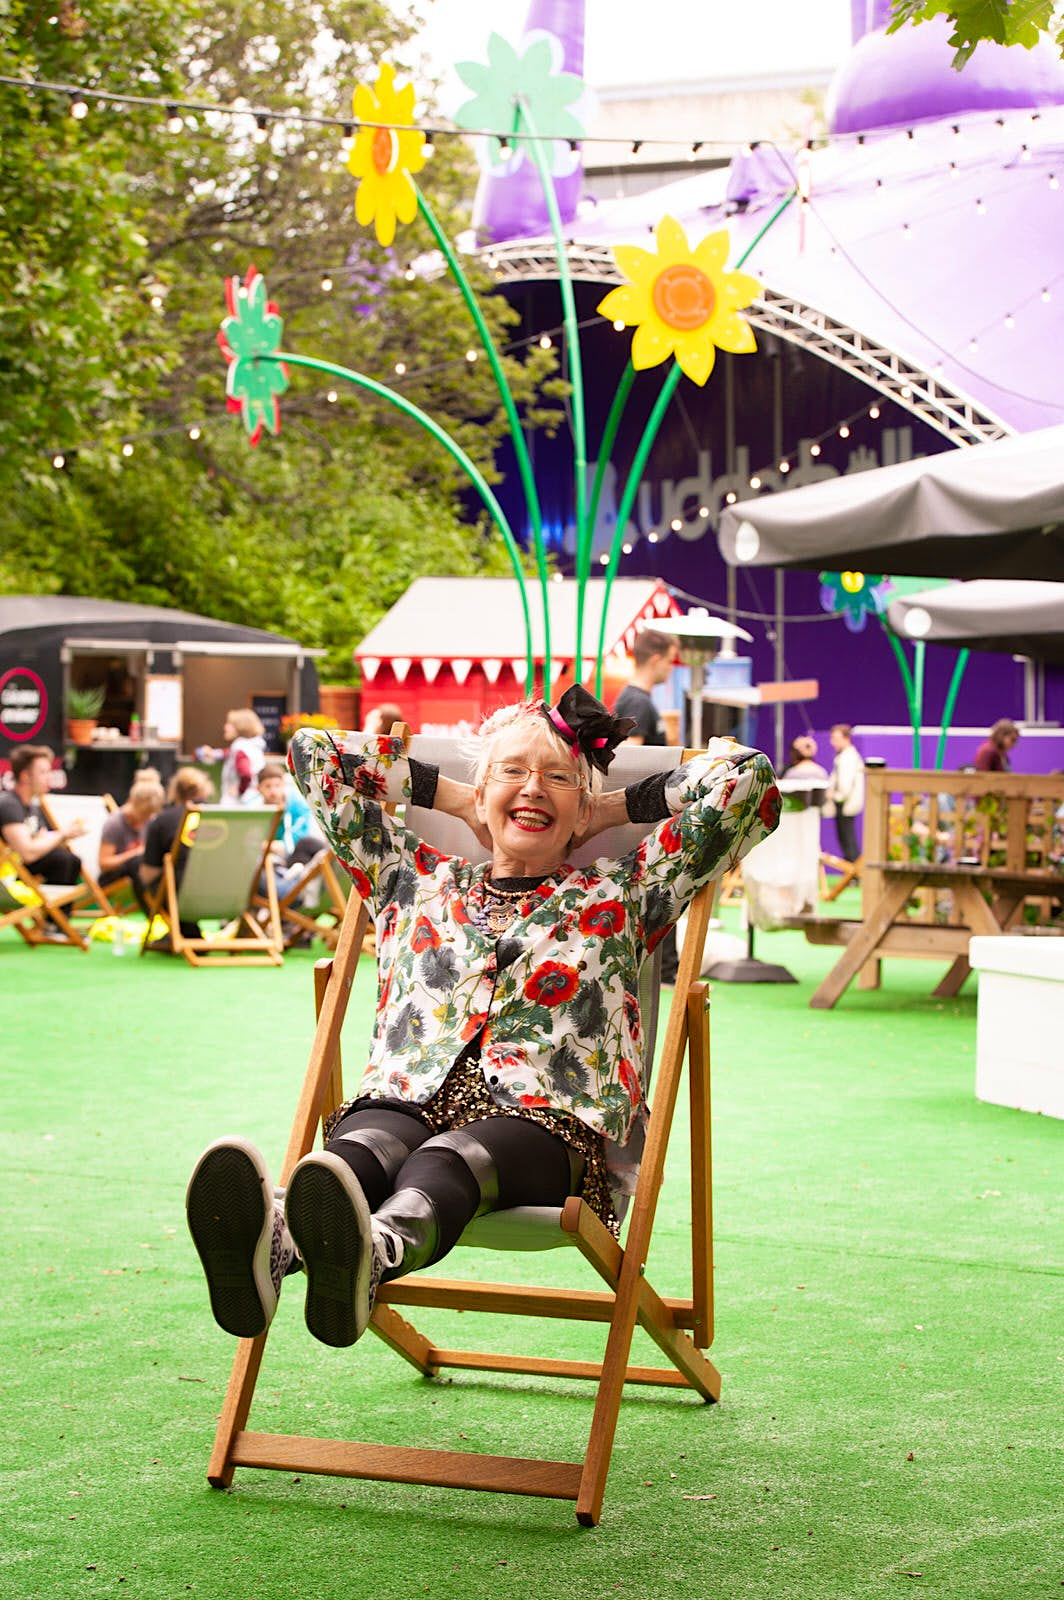 English actress and singer Su Pollard poses during a photocall to promote her show 'Harpy' at the Edinburgh Festival Fringe at Underbelly George Square. She is sitting in a deckchair with her hands behind her head and feet raised, there are plastic flowers and the Underbelly venue in the background.